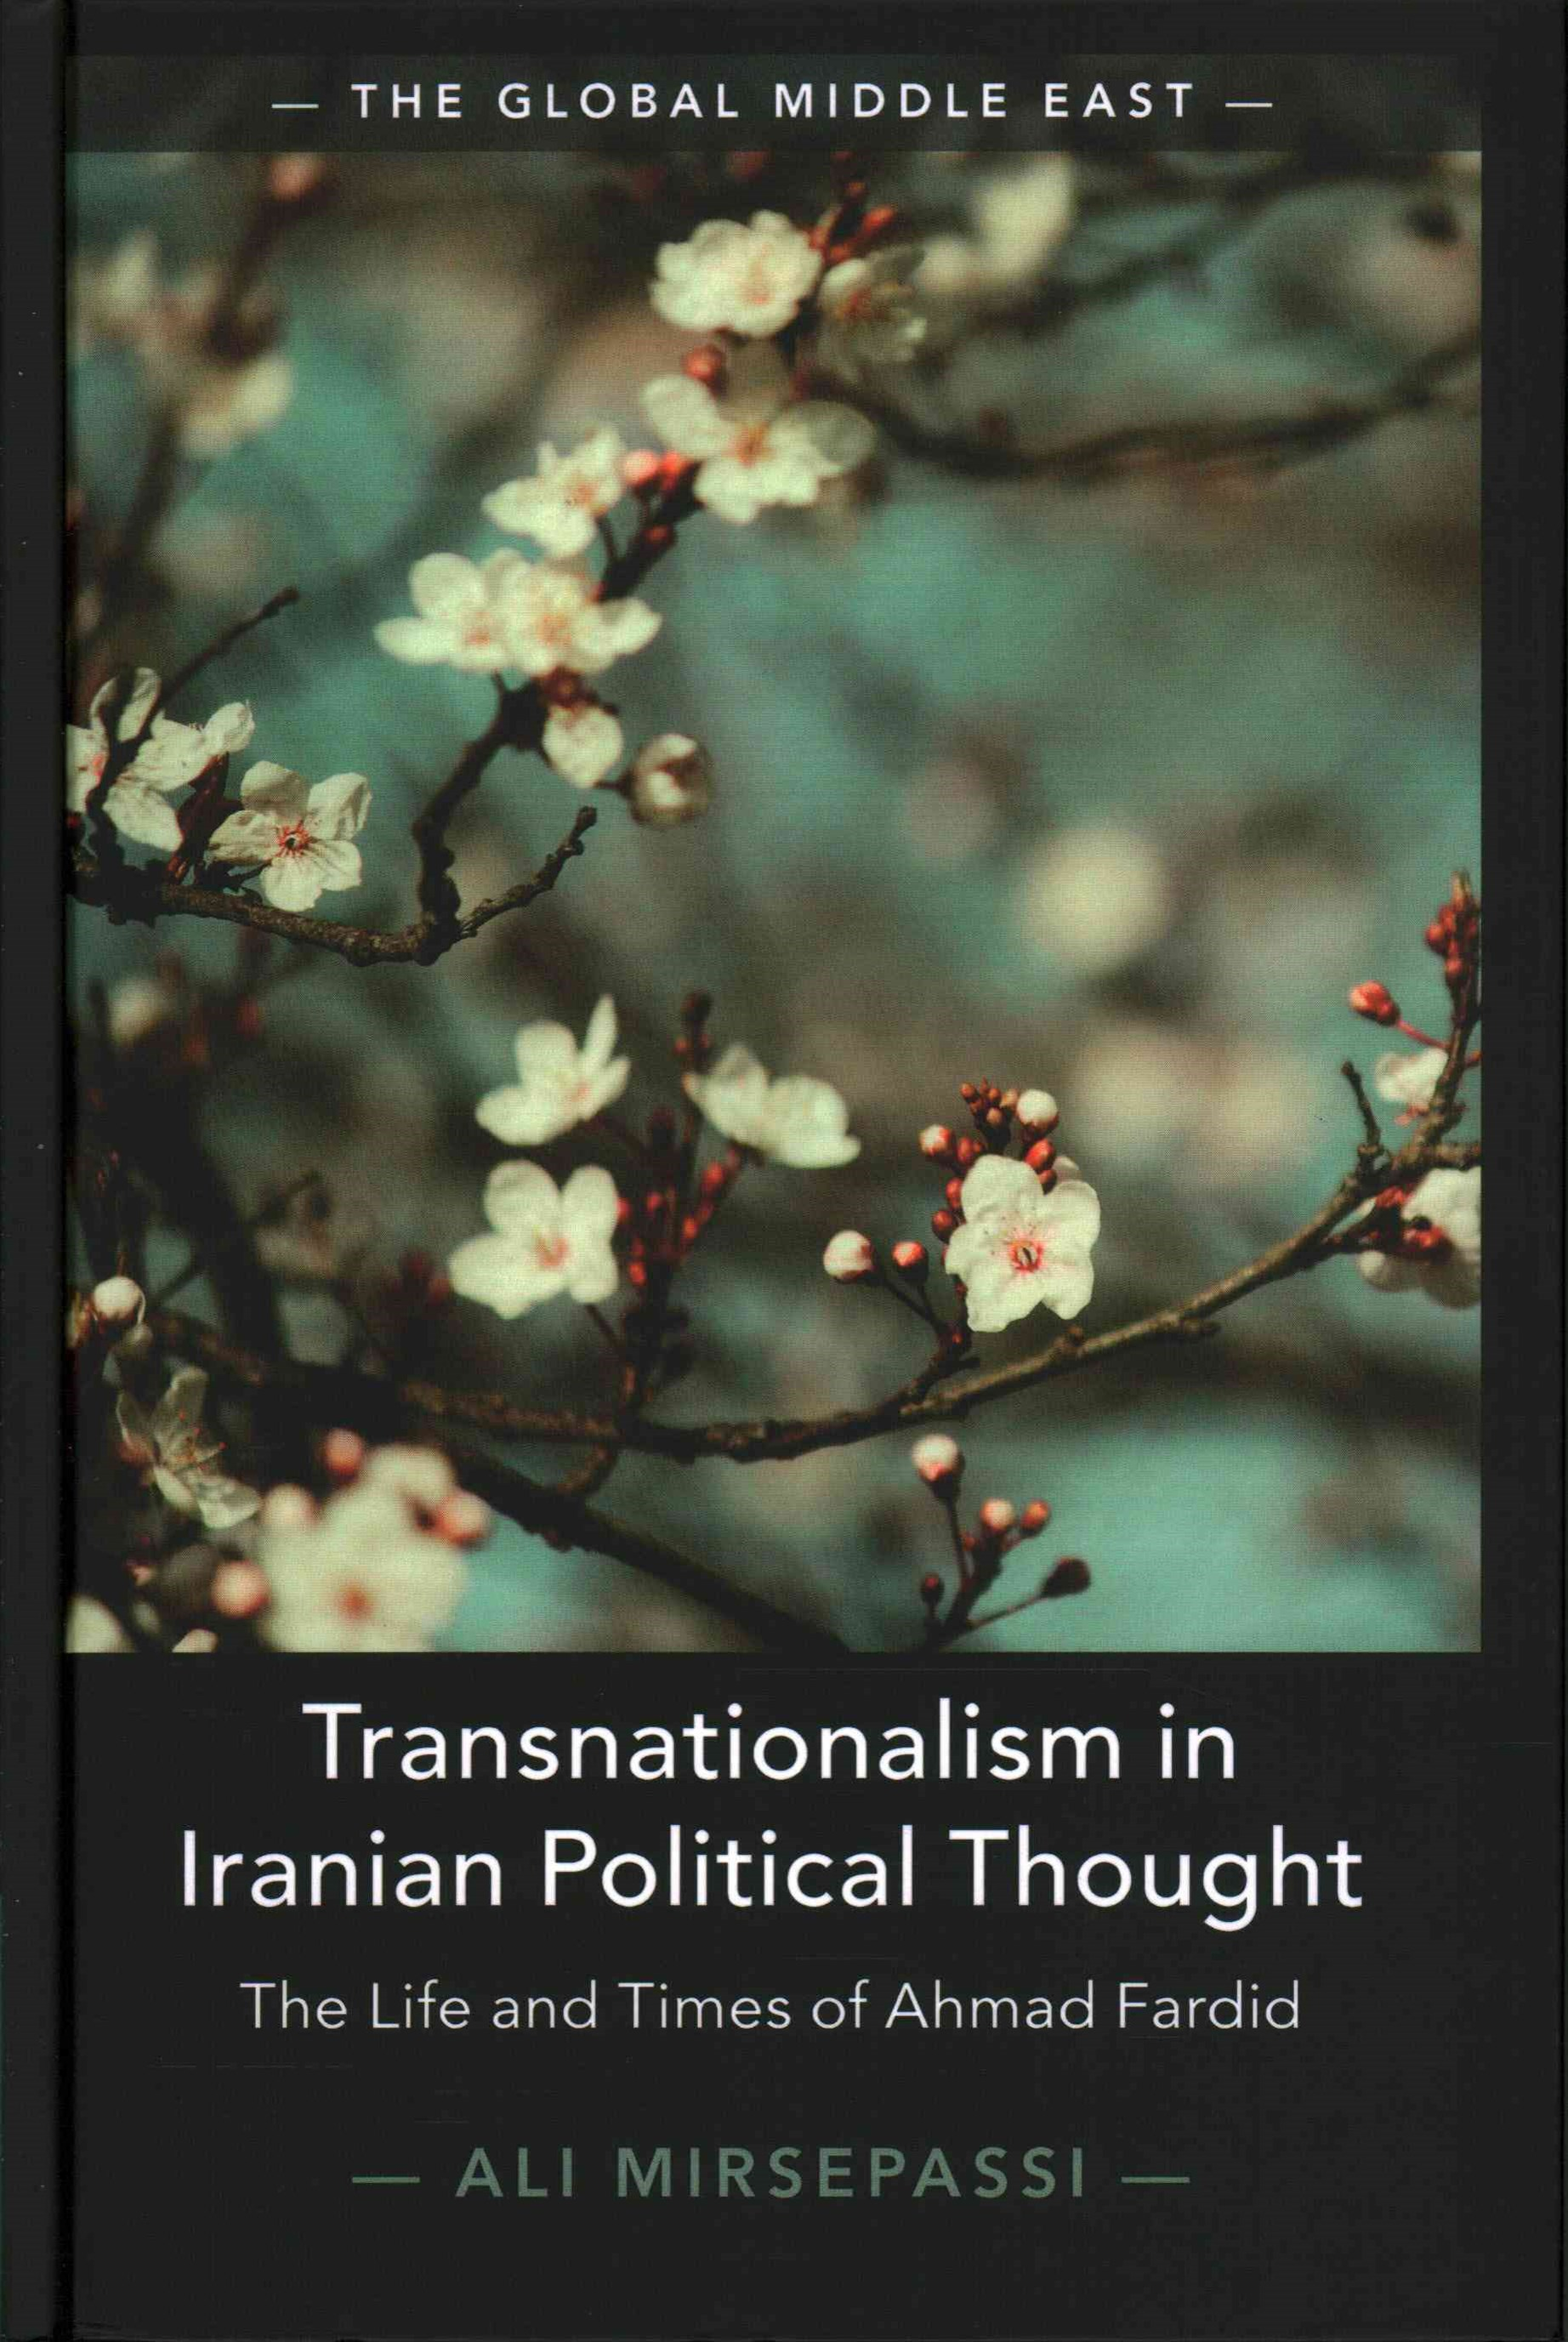 Transnationalism in Iranian Political Thought